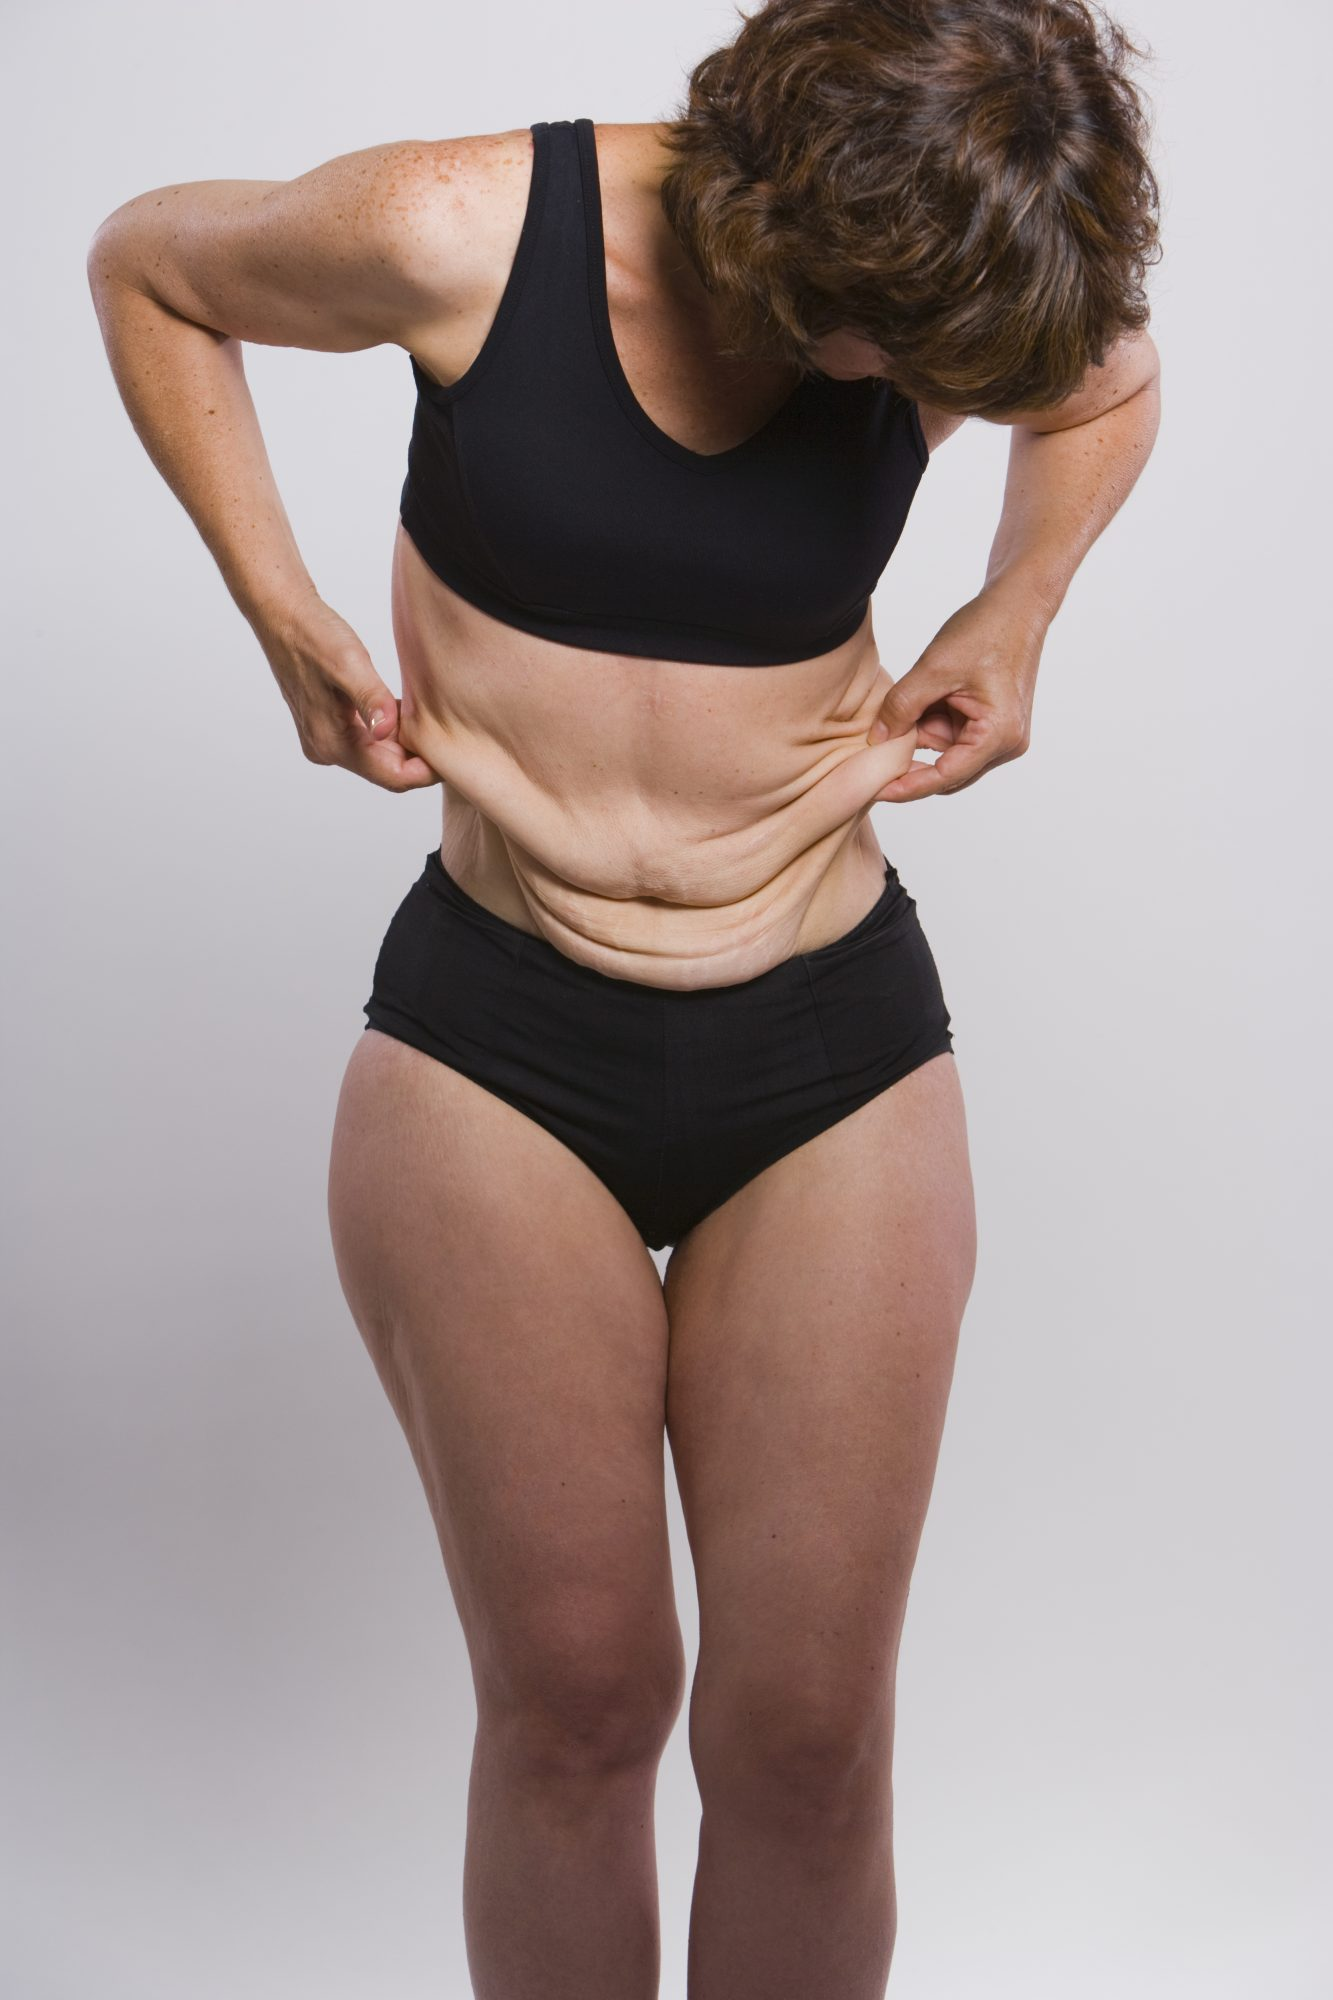 What Is Skin Removal Surgery Health